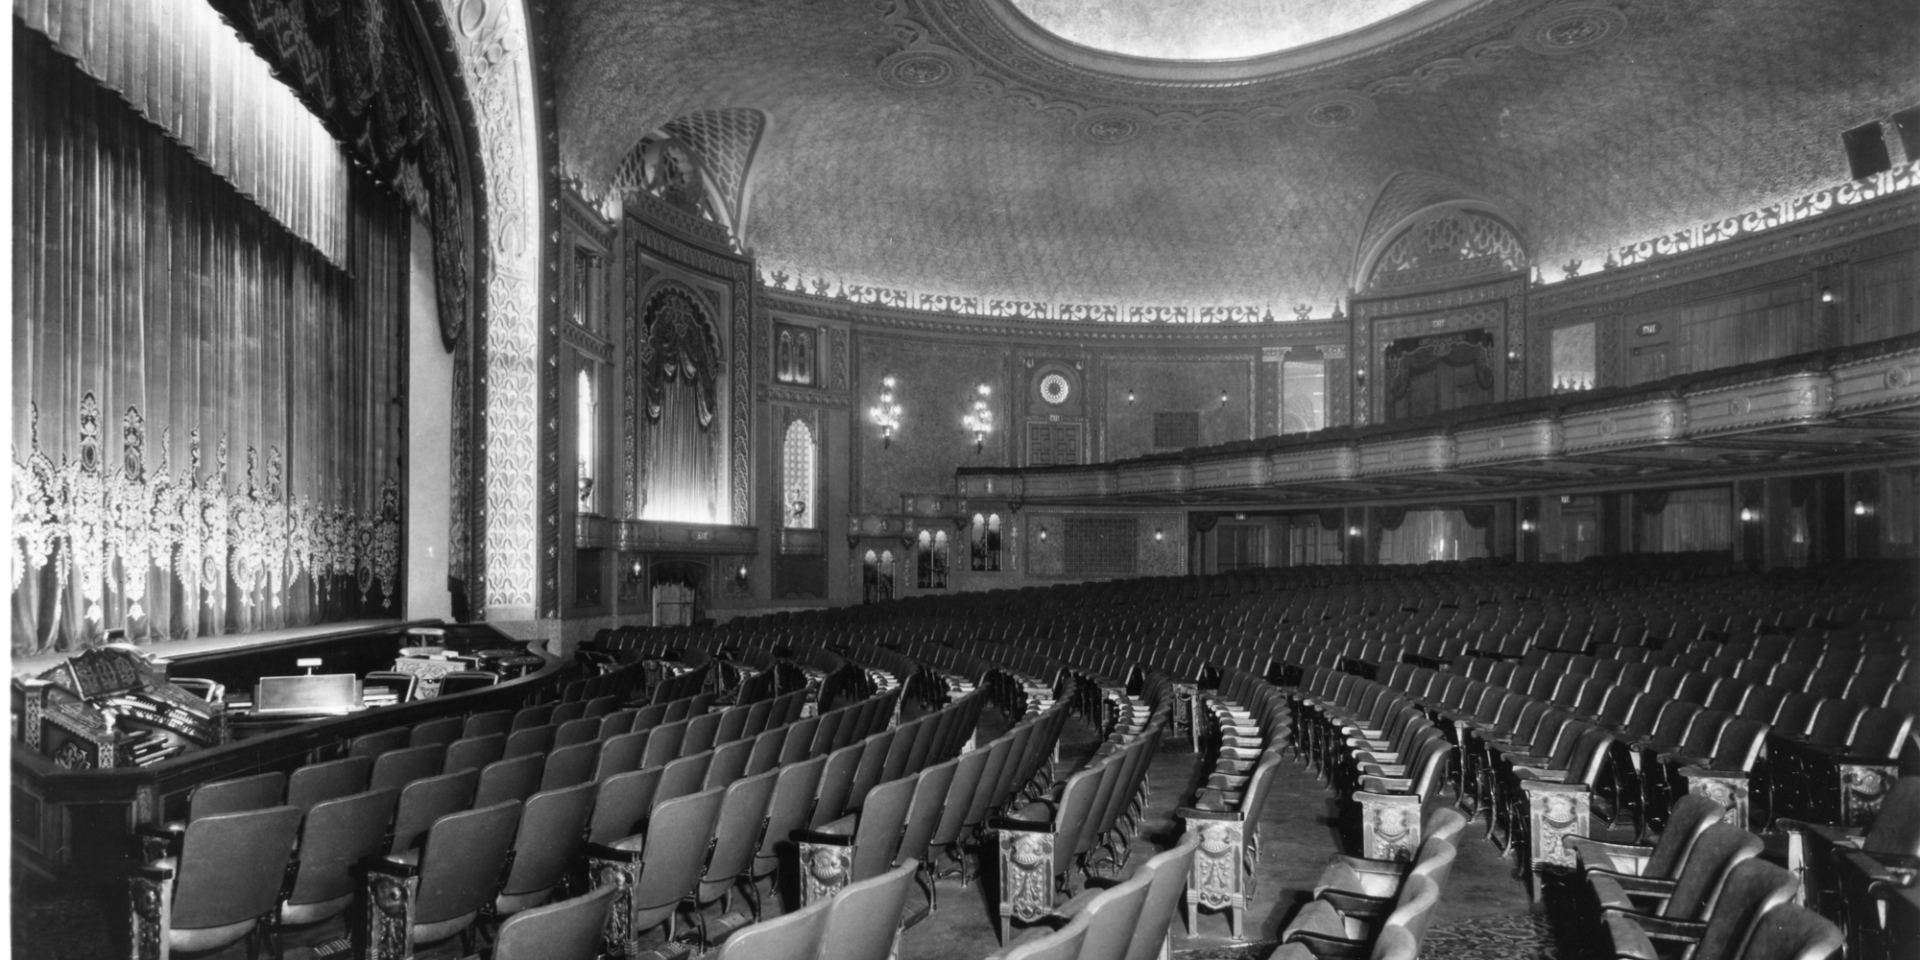 A 1928 Night at the Movies | Historic Tennessee Theatre - Est. 1928  Knoxville, Tennessee